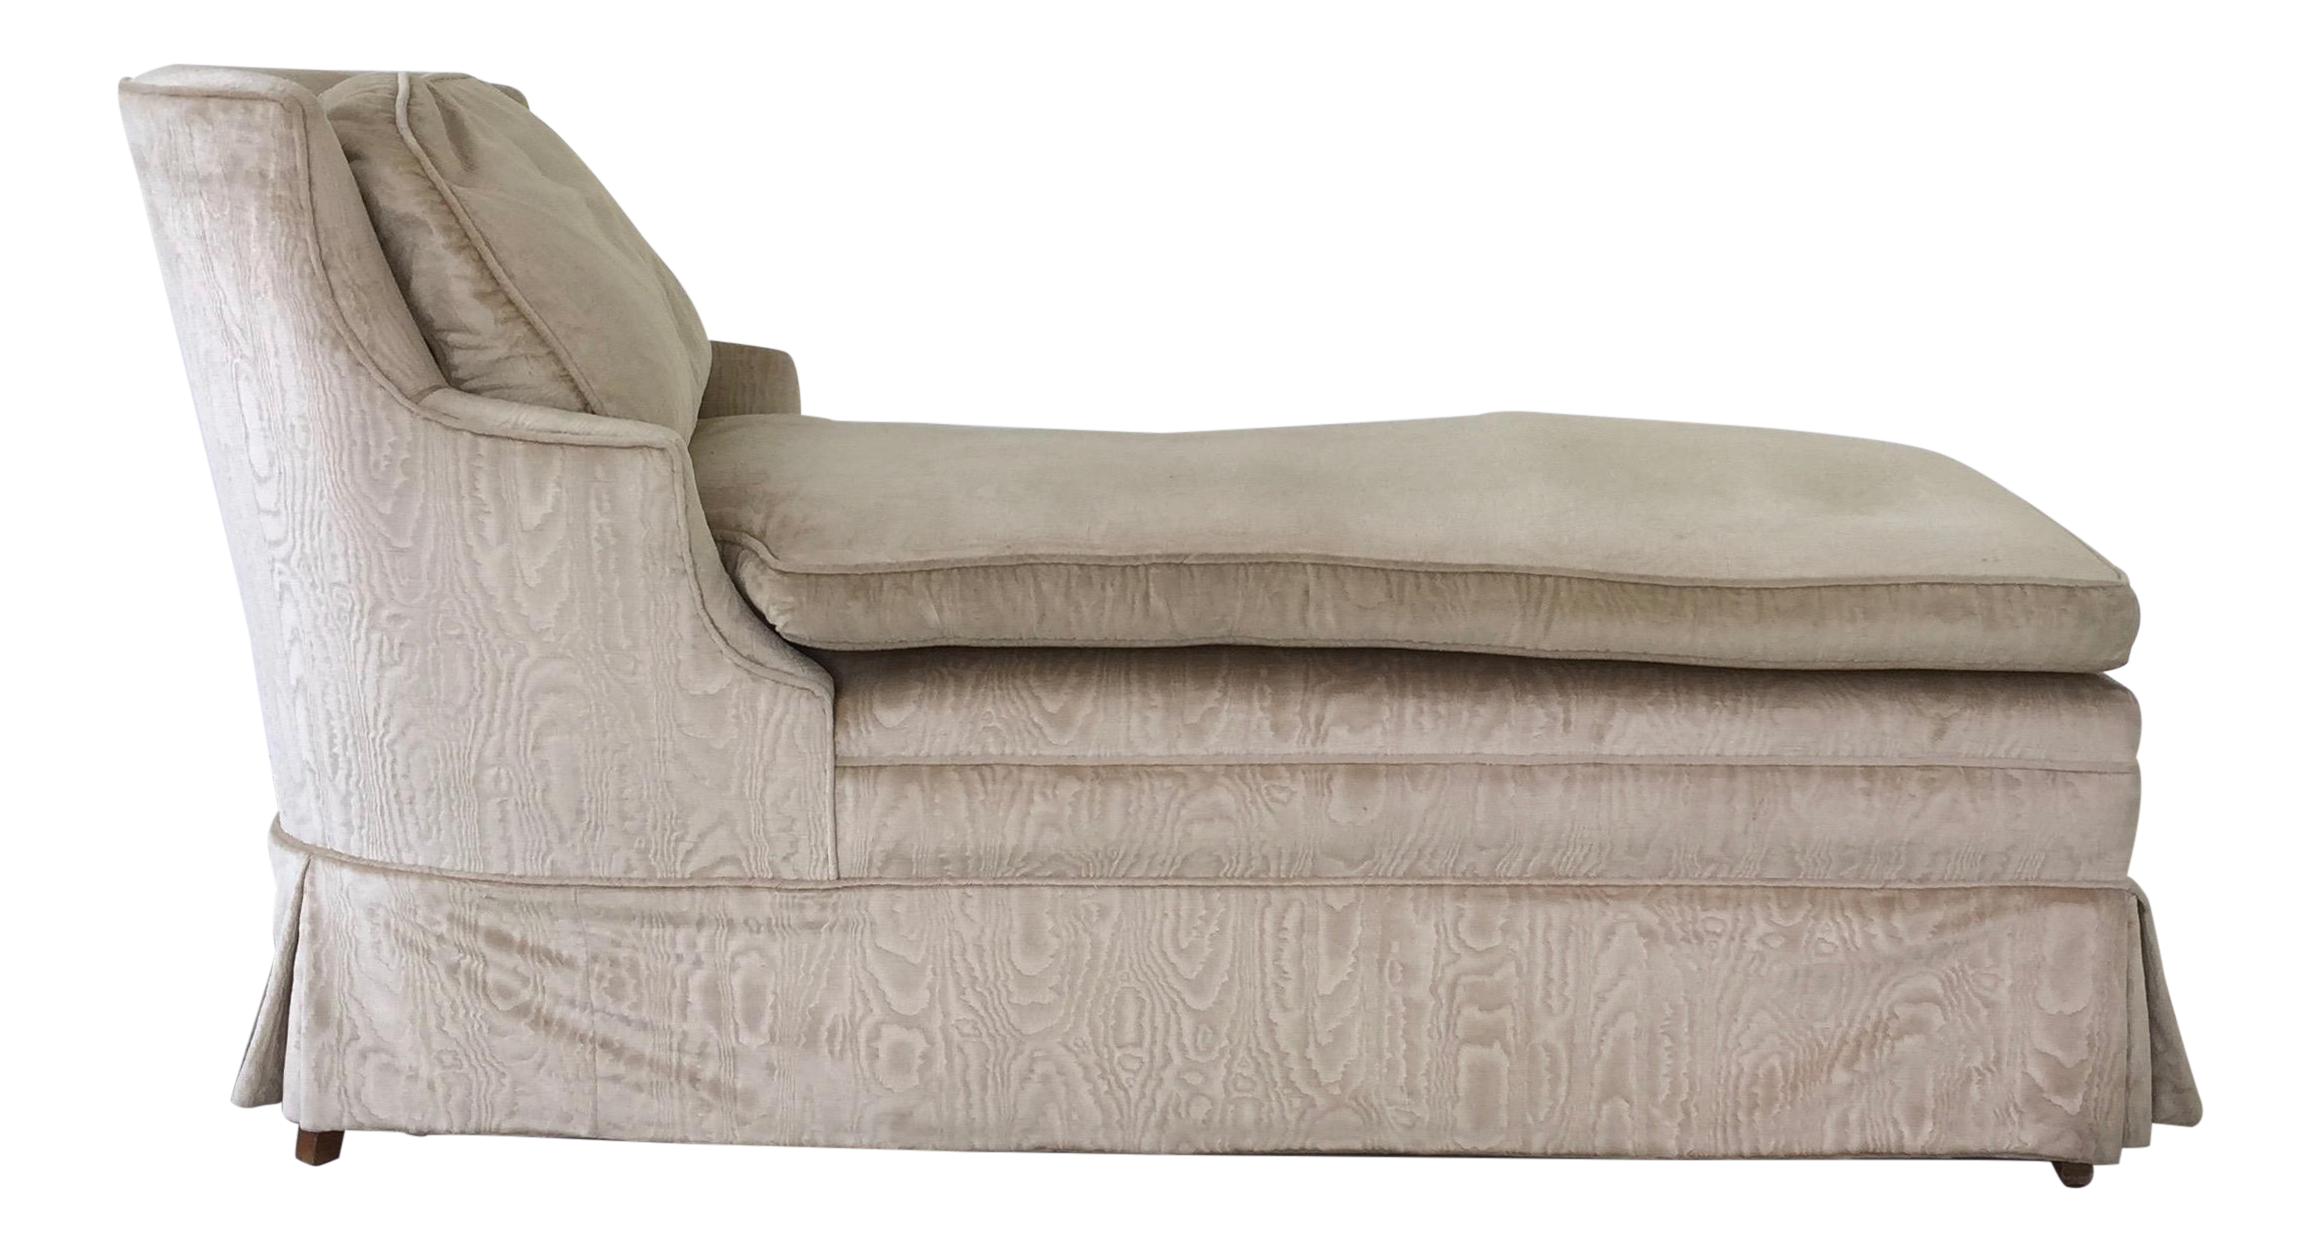 Vintage upholstered chaise longue chairish for Chaise longue northern ireland